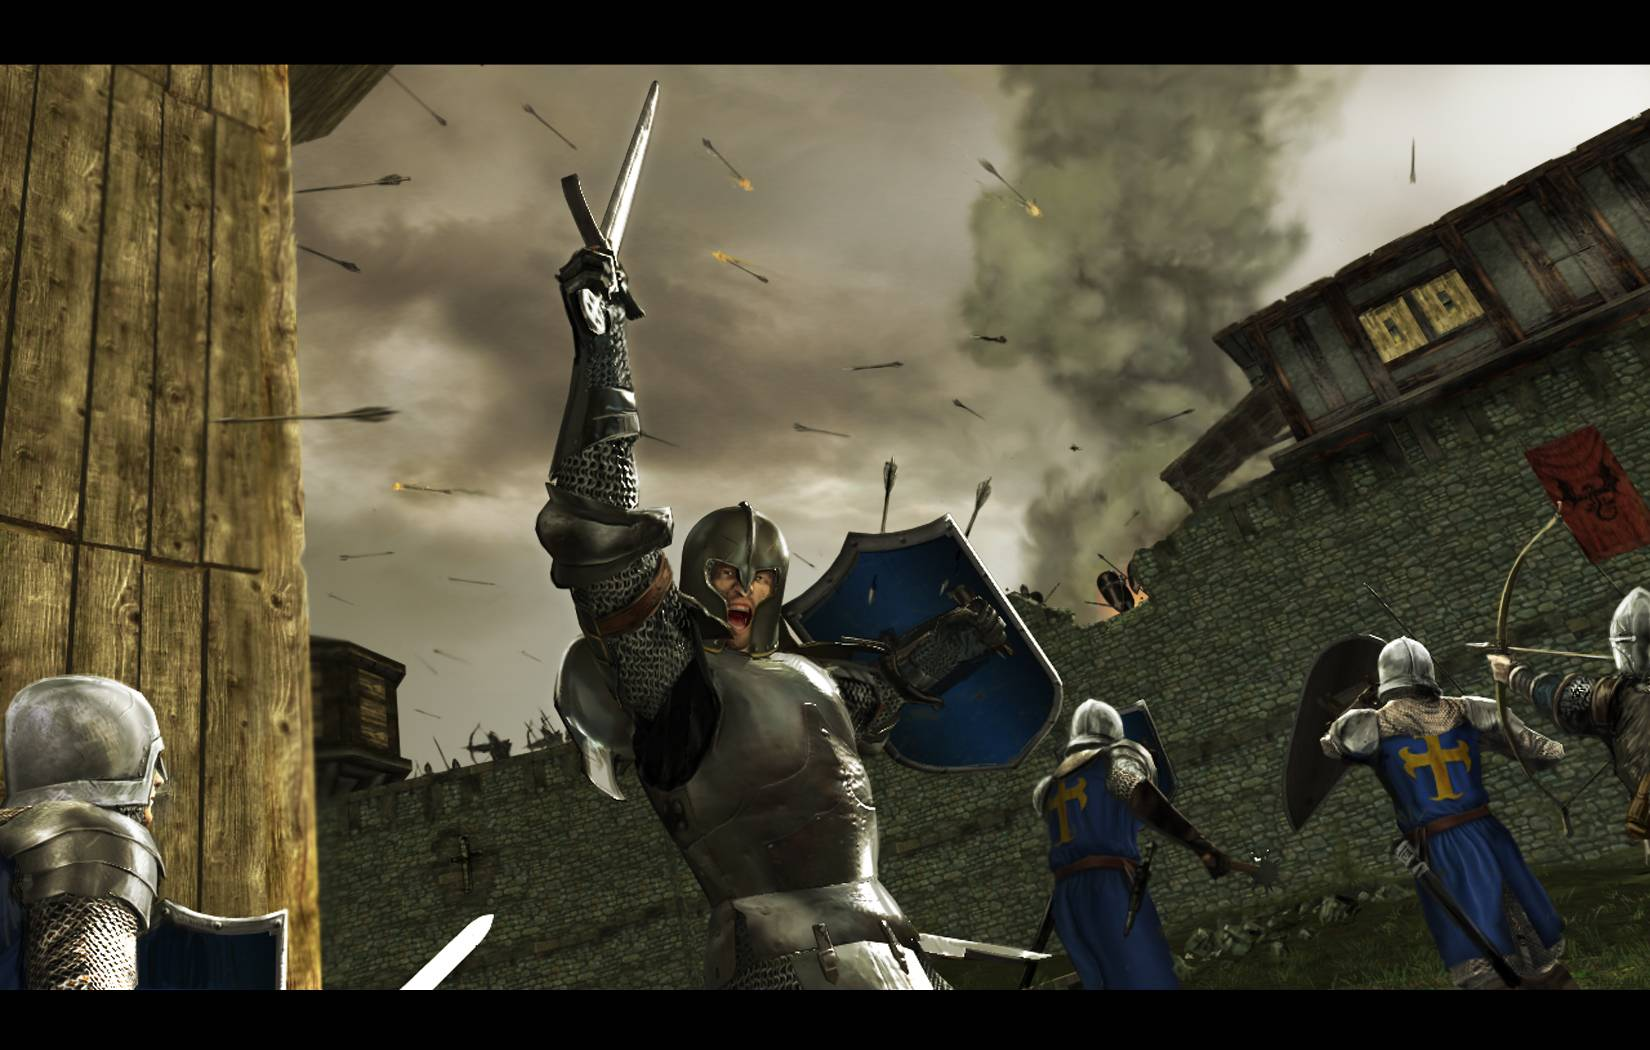 the lack of chivalry in the knights in shrek a fantasy adventure film Romance is the part that offers adventure a knight trained in the substance of chivalry this same supposition of romance is also found in the film.